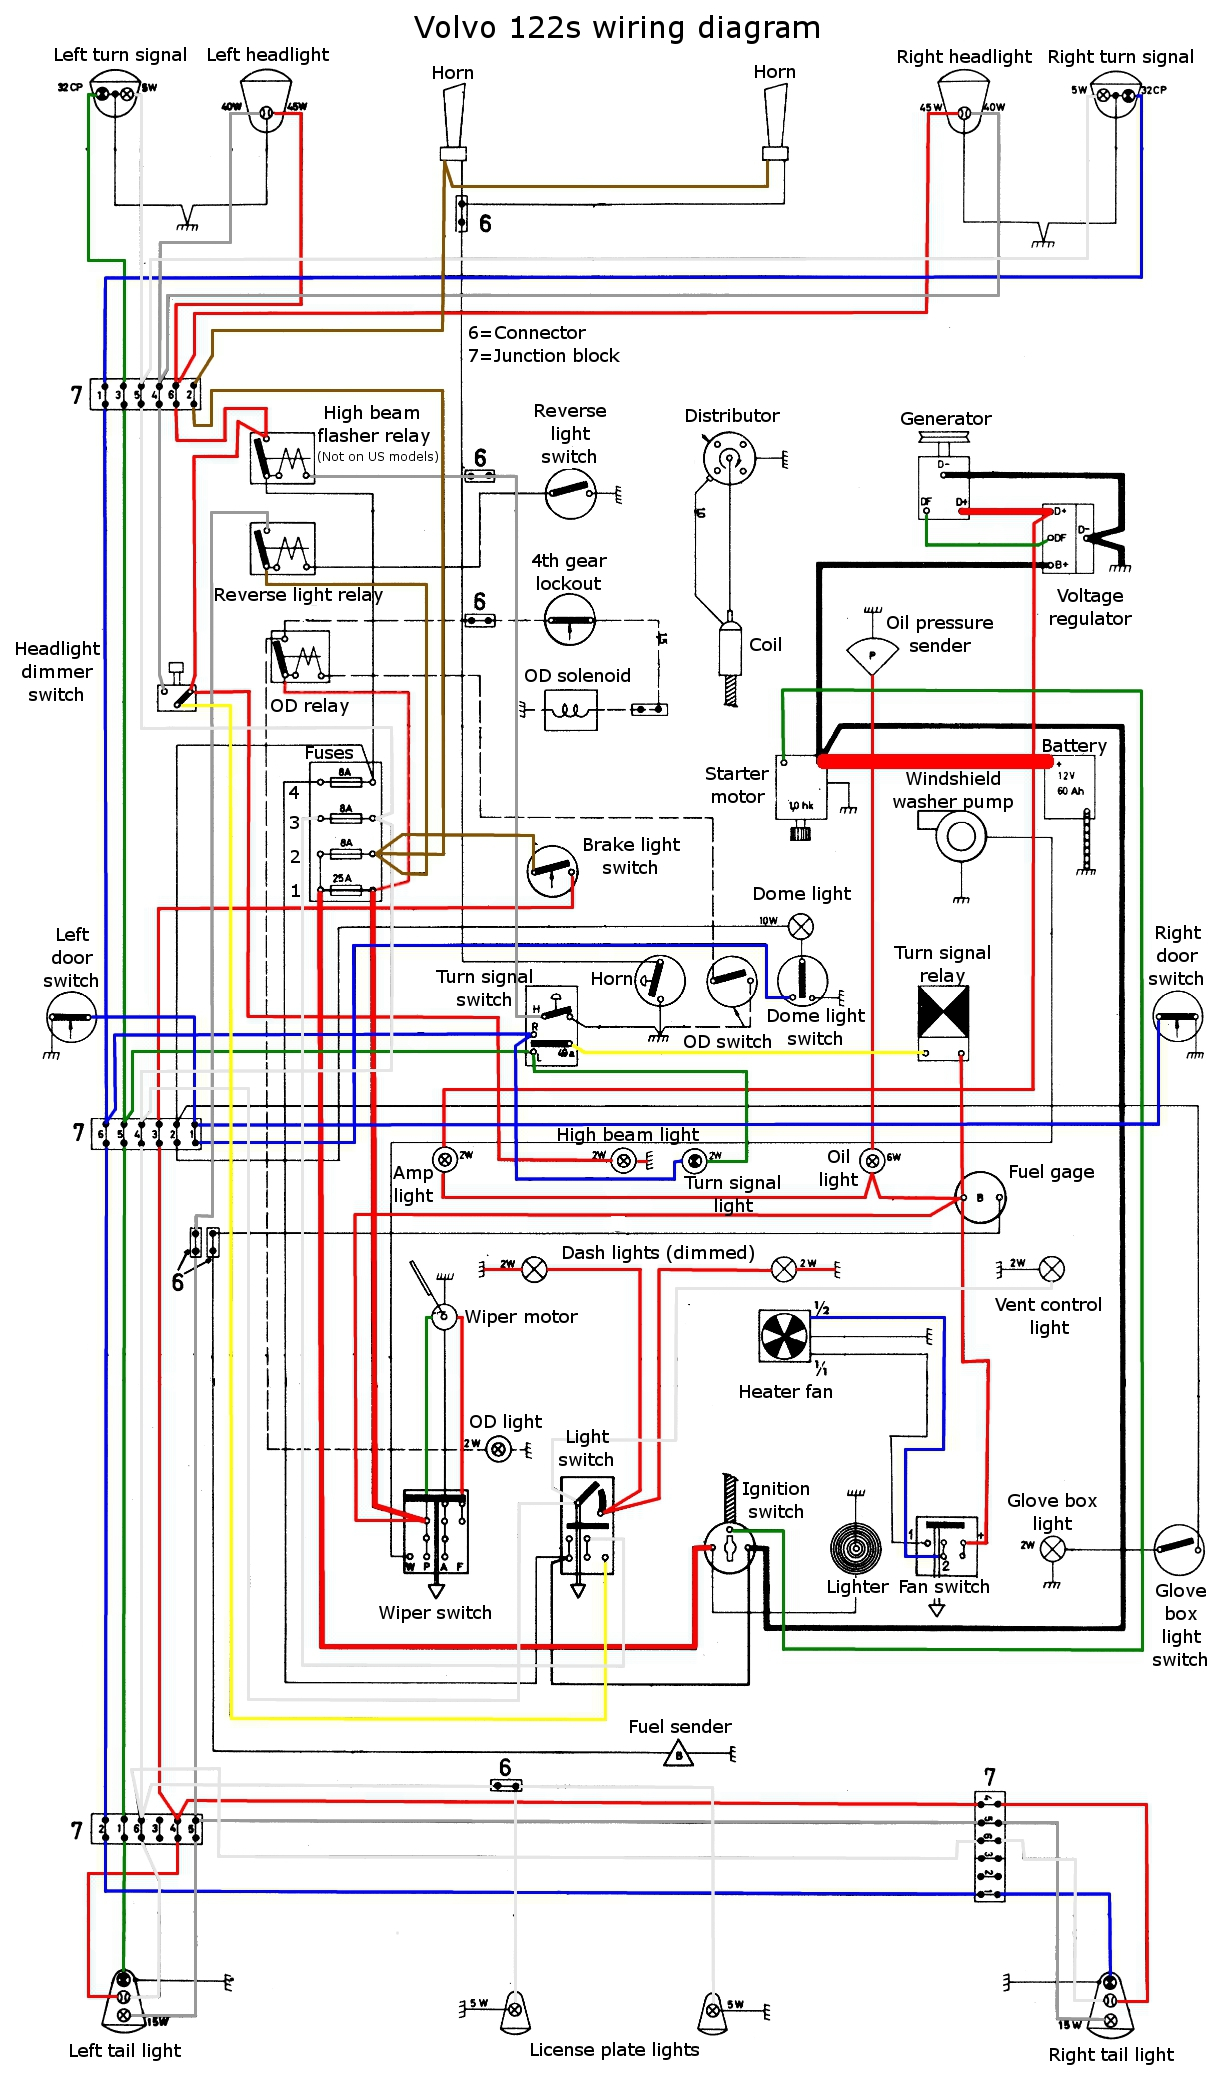 122 wiring diagram color wiring gremlins 2004 volvo xc70 wiring diagram at readyjetset.co